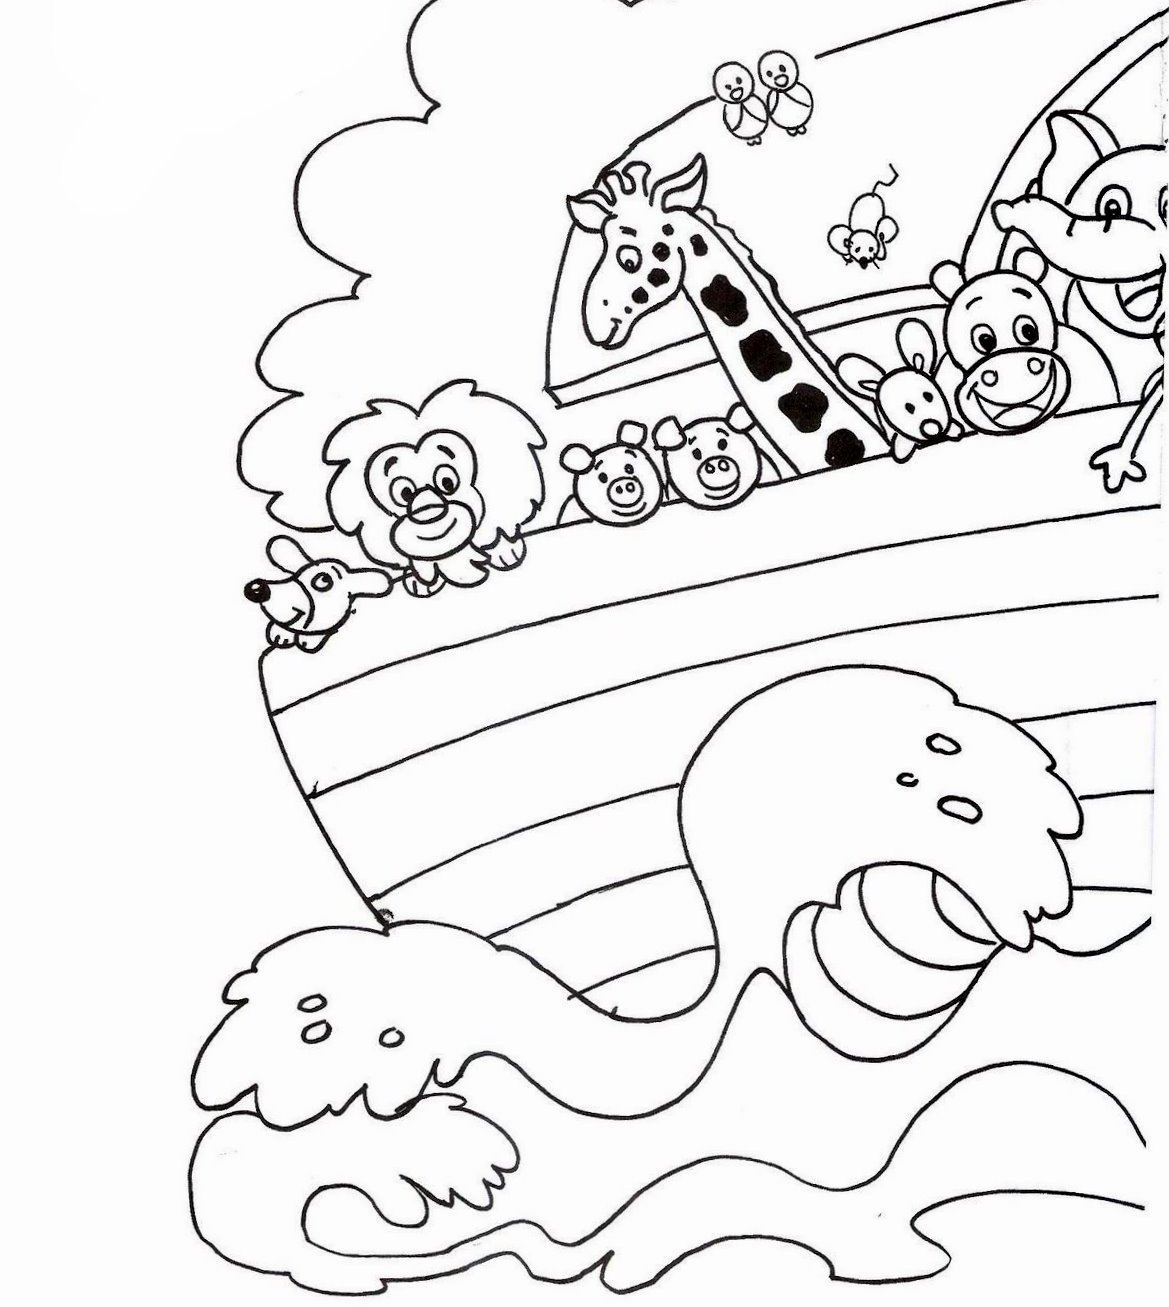 An analysis of the story of noahs ark from the old testament